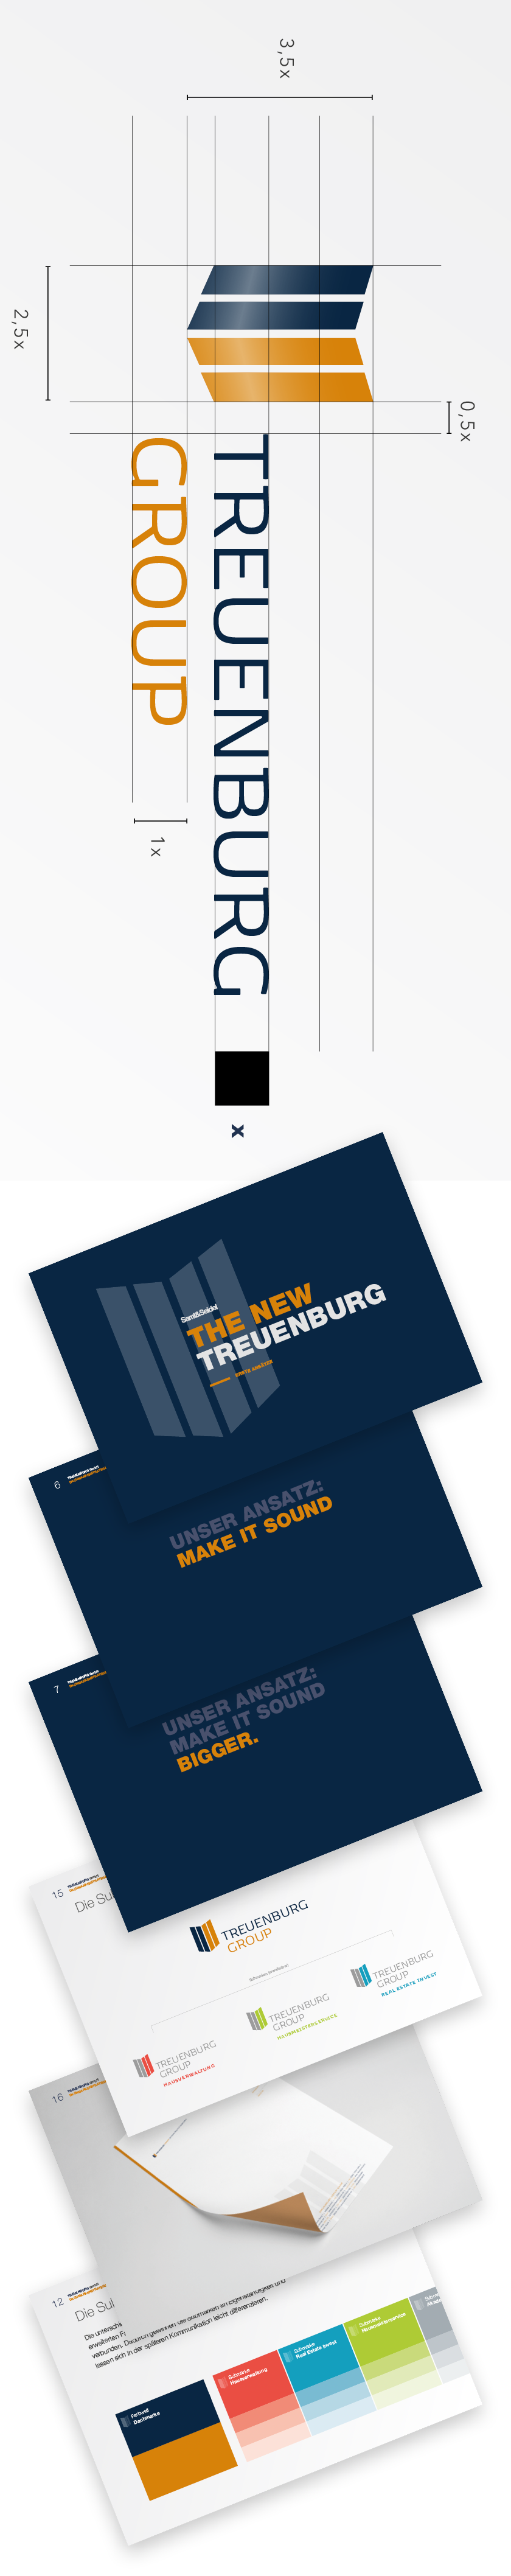 Samt&Seidel_Referenz_Treuenburg_Design_01